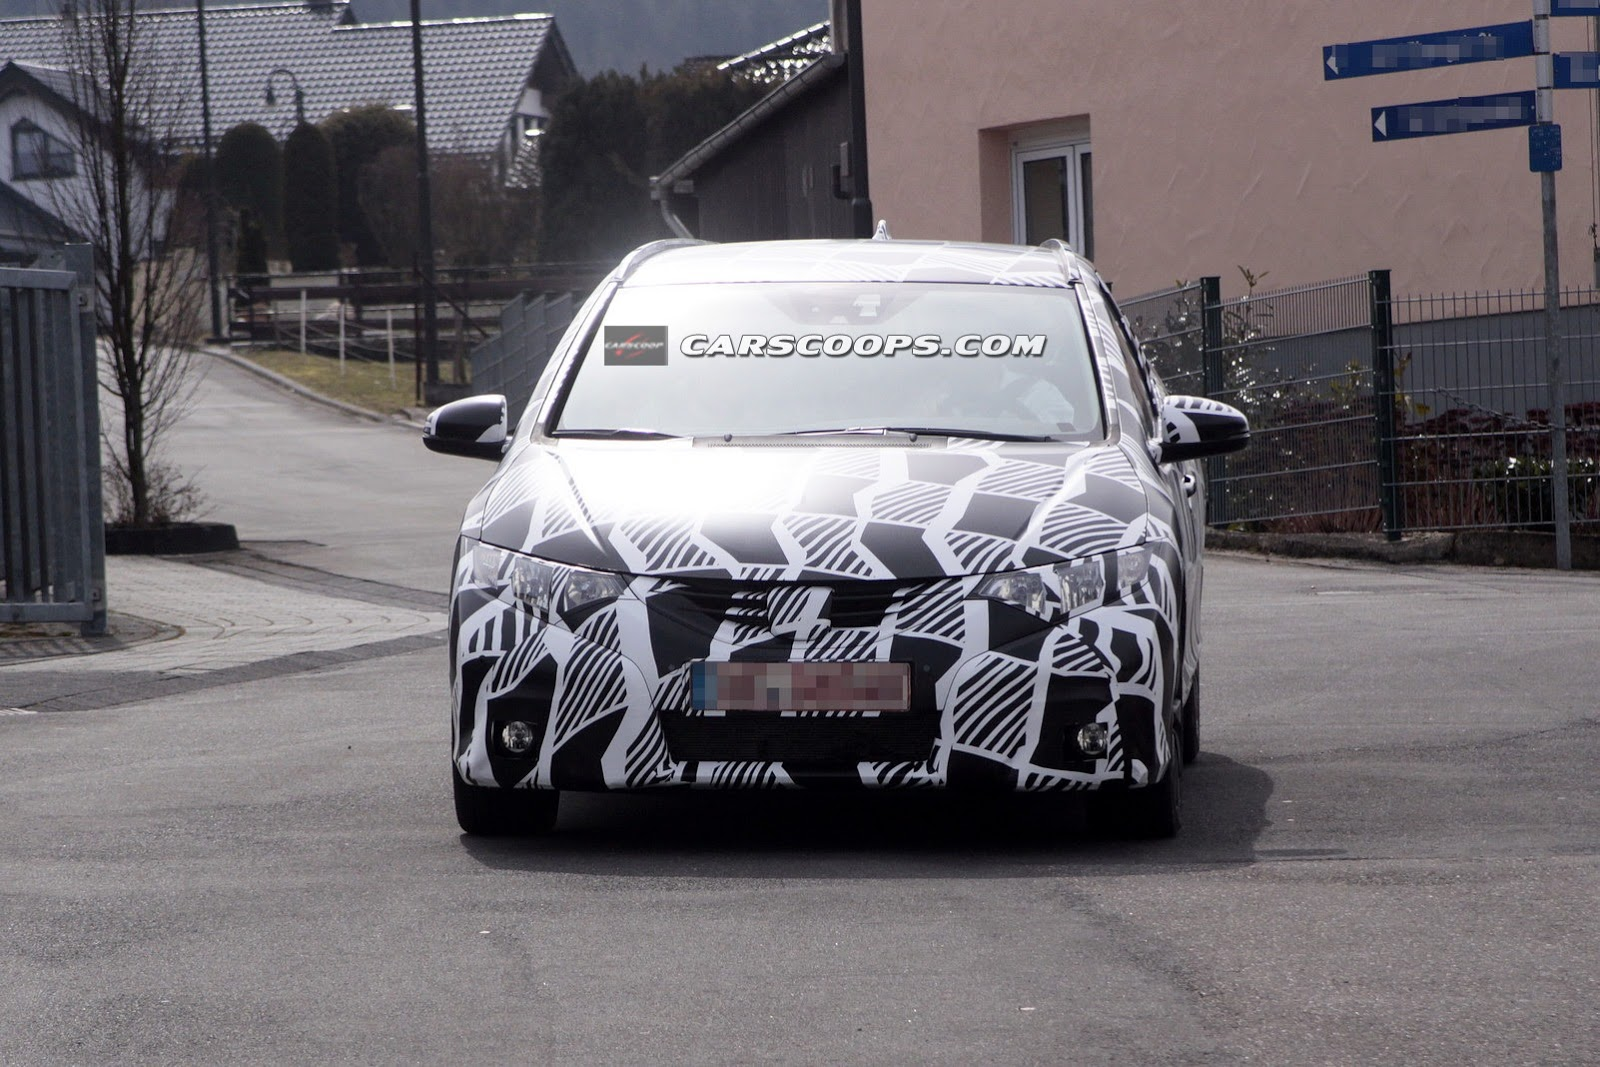 2014 Honda Civic Wagon spied on the road